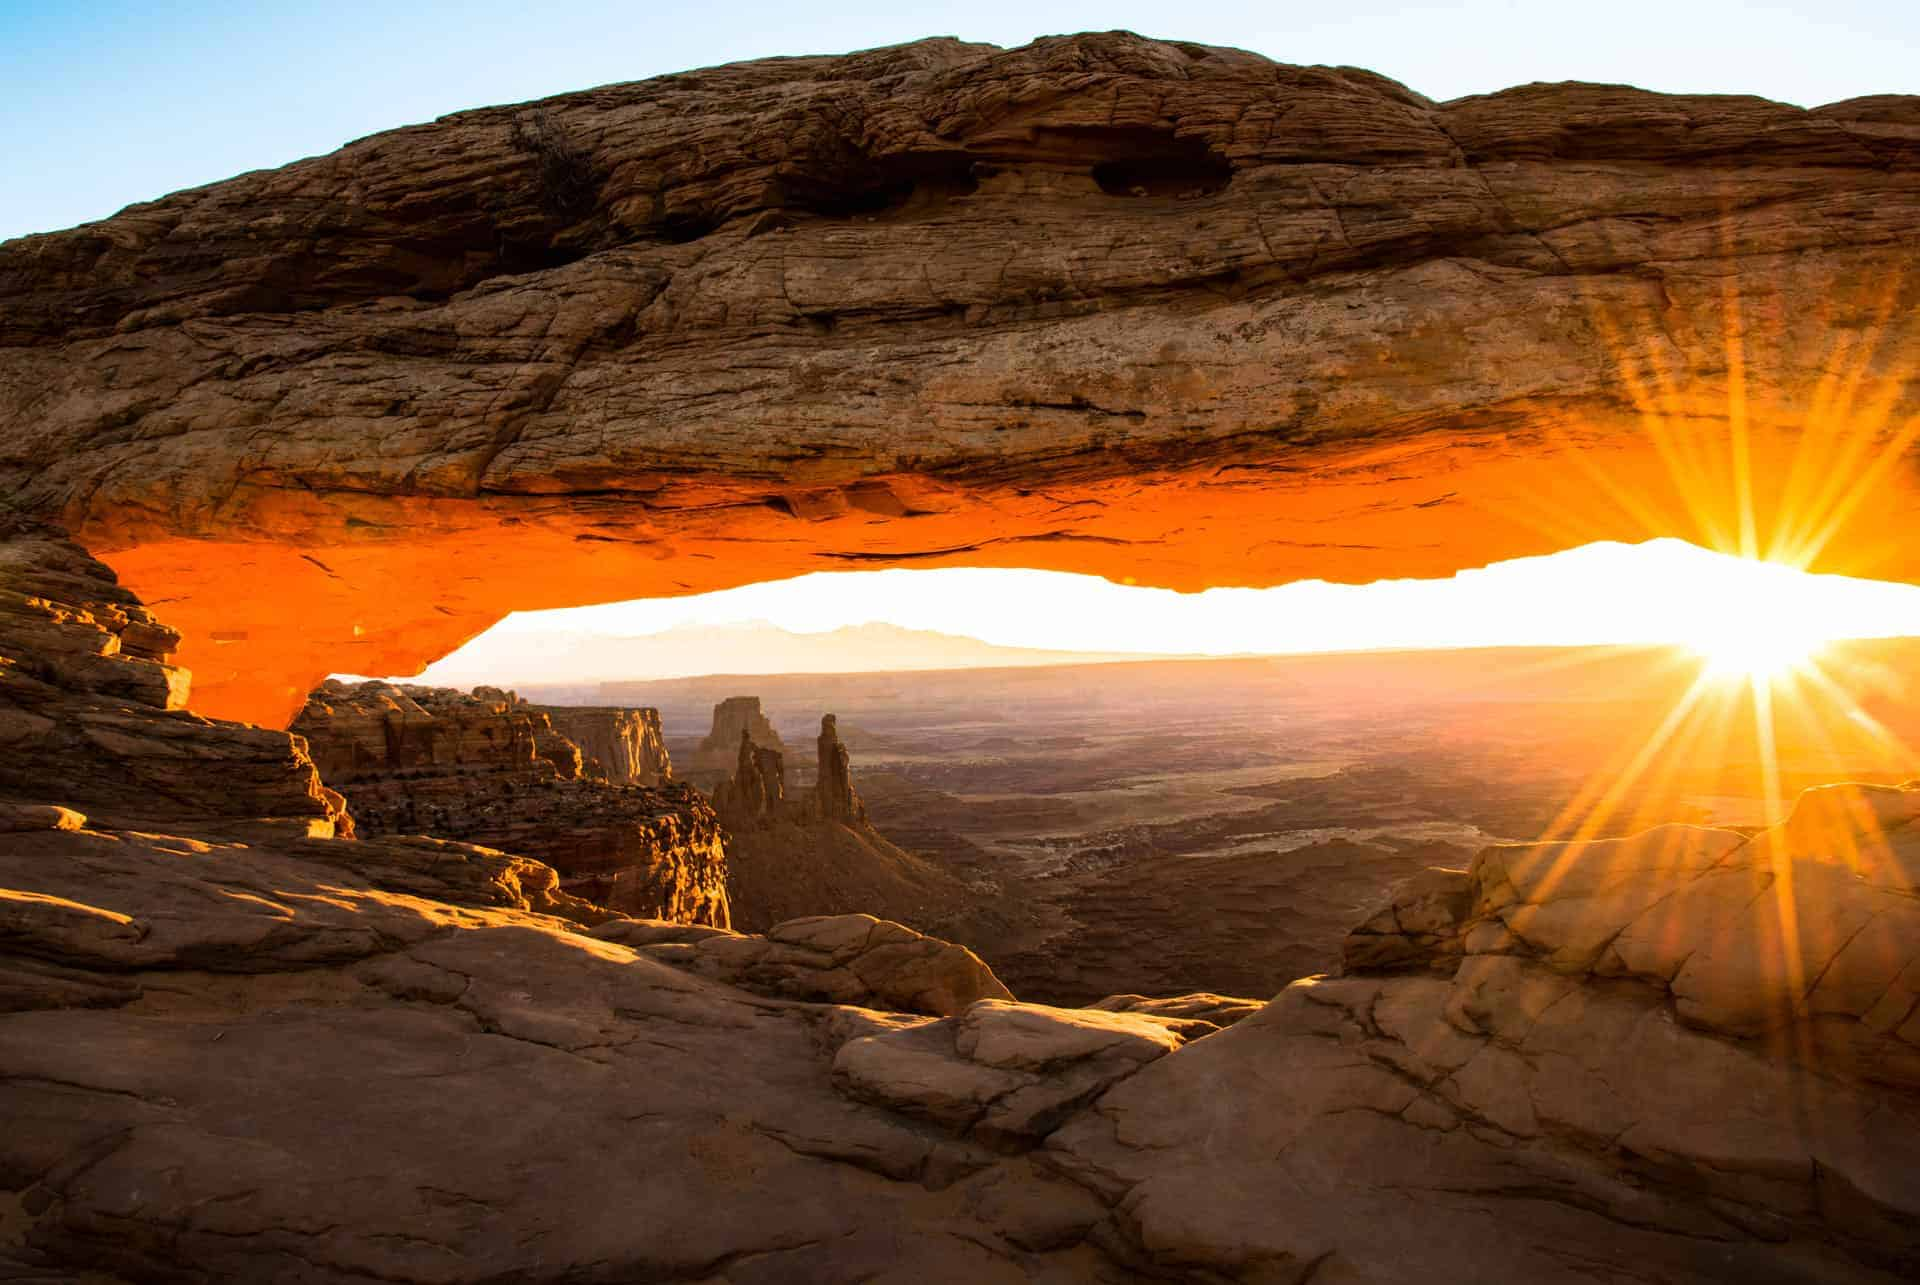 Mesa Arch at Canyonlands National Park, Utah at sunrise.